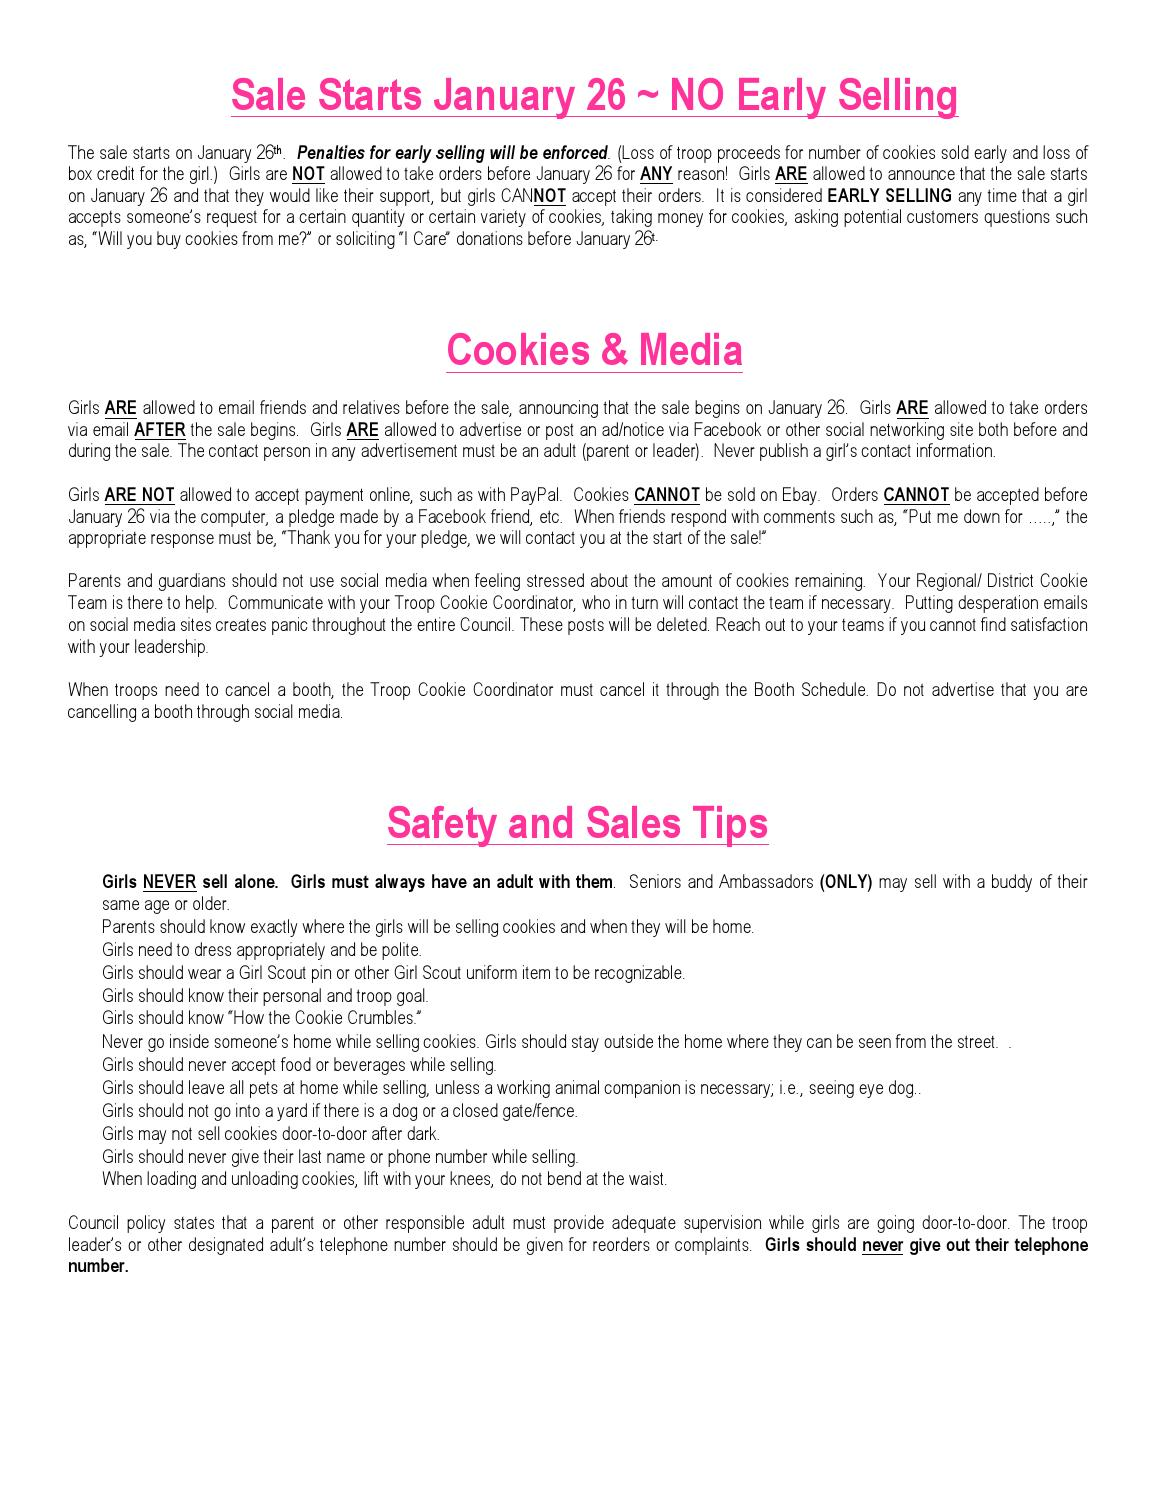 Cookie family guide by Girl Scouts of San Gorgonio - issuu